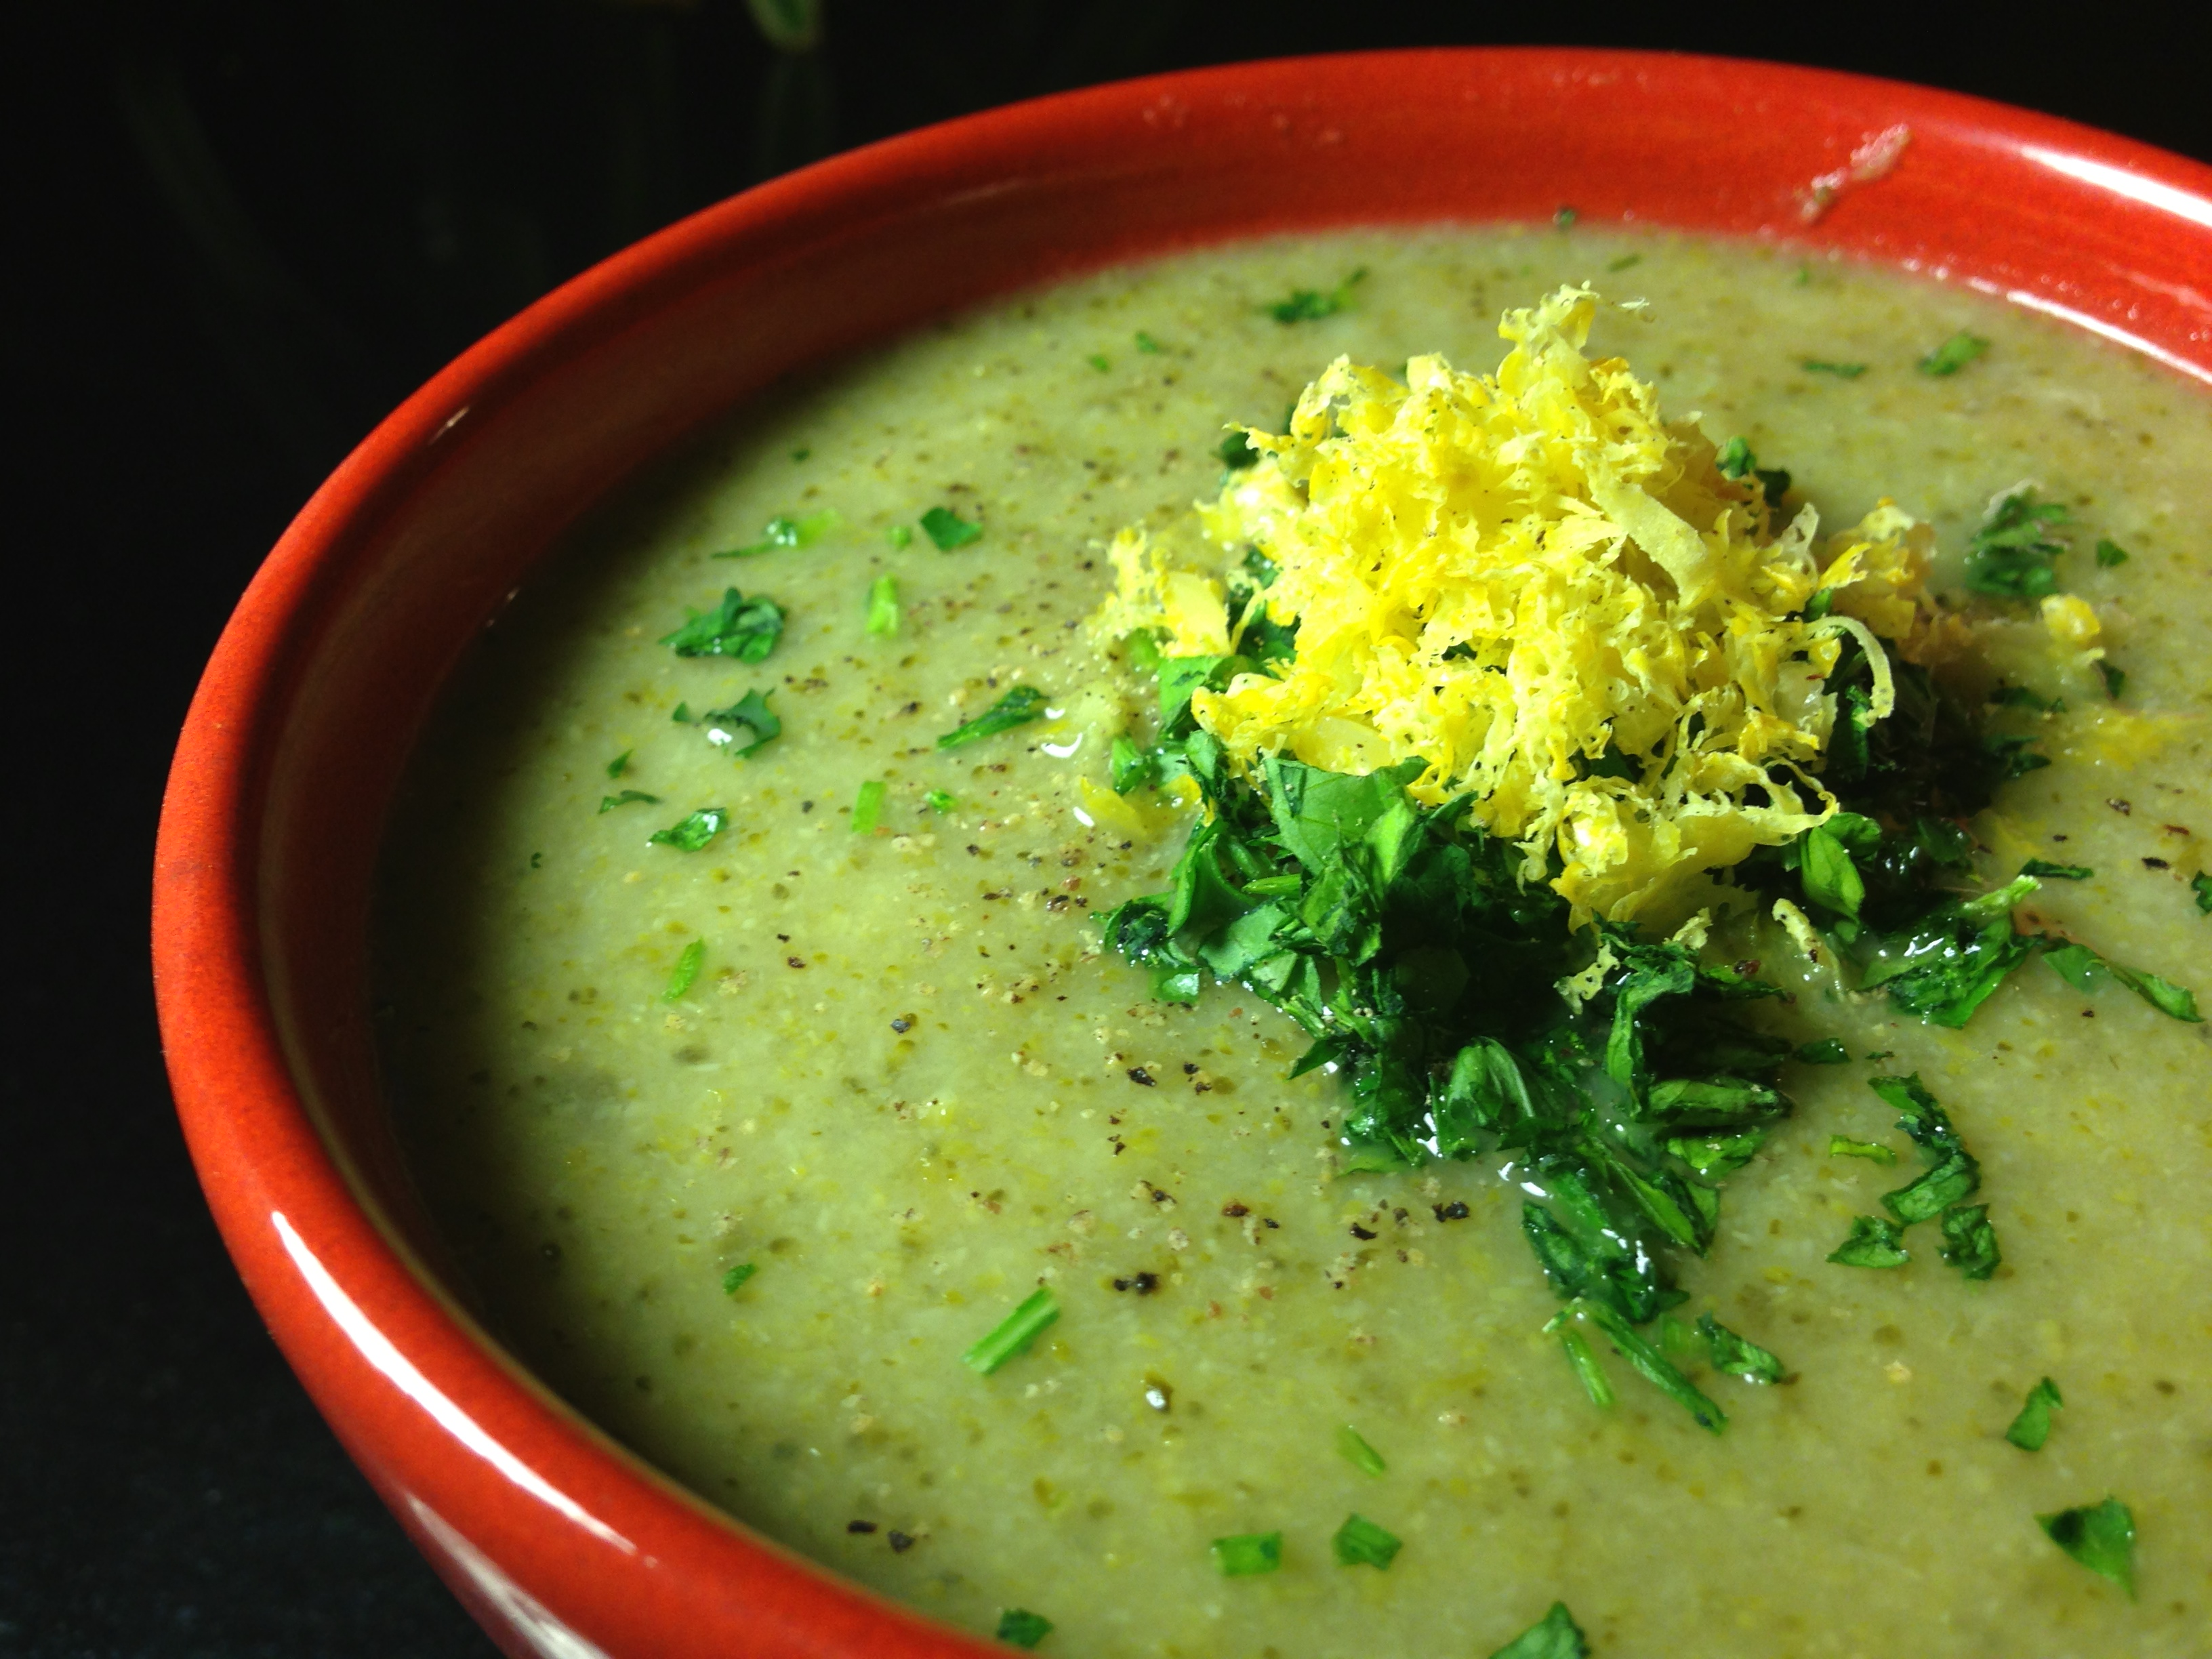 Vegan Broccoli Soup with Avocado & Jalapeno or Basil oil or Gremolata ...